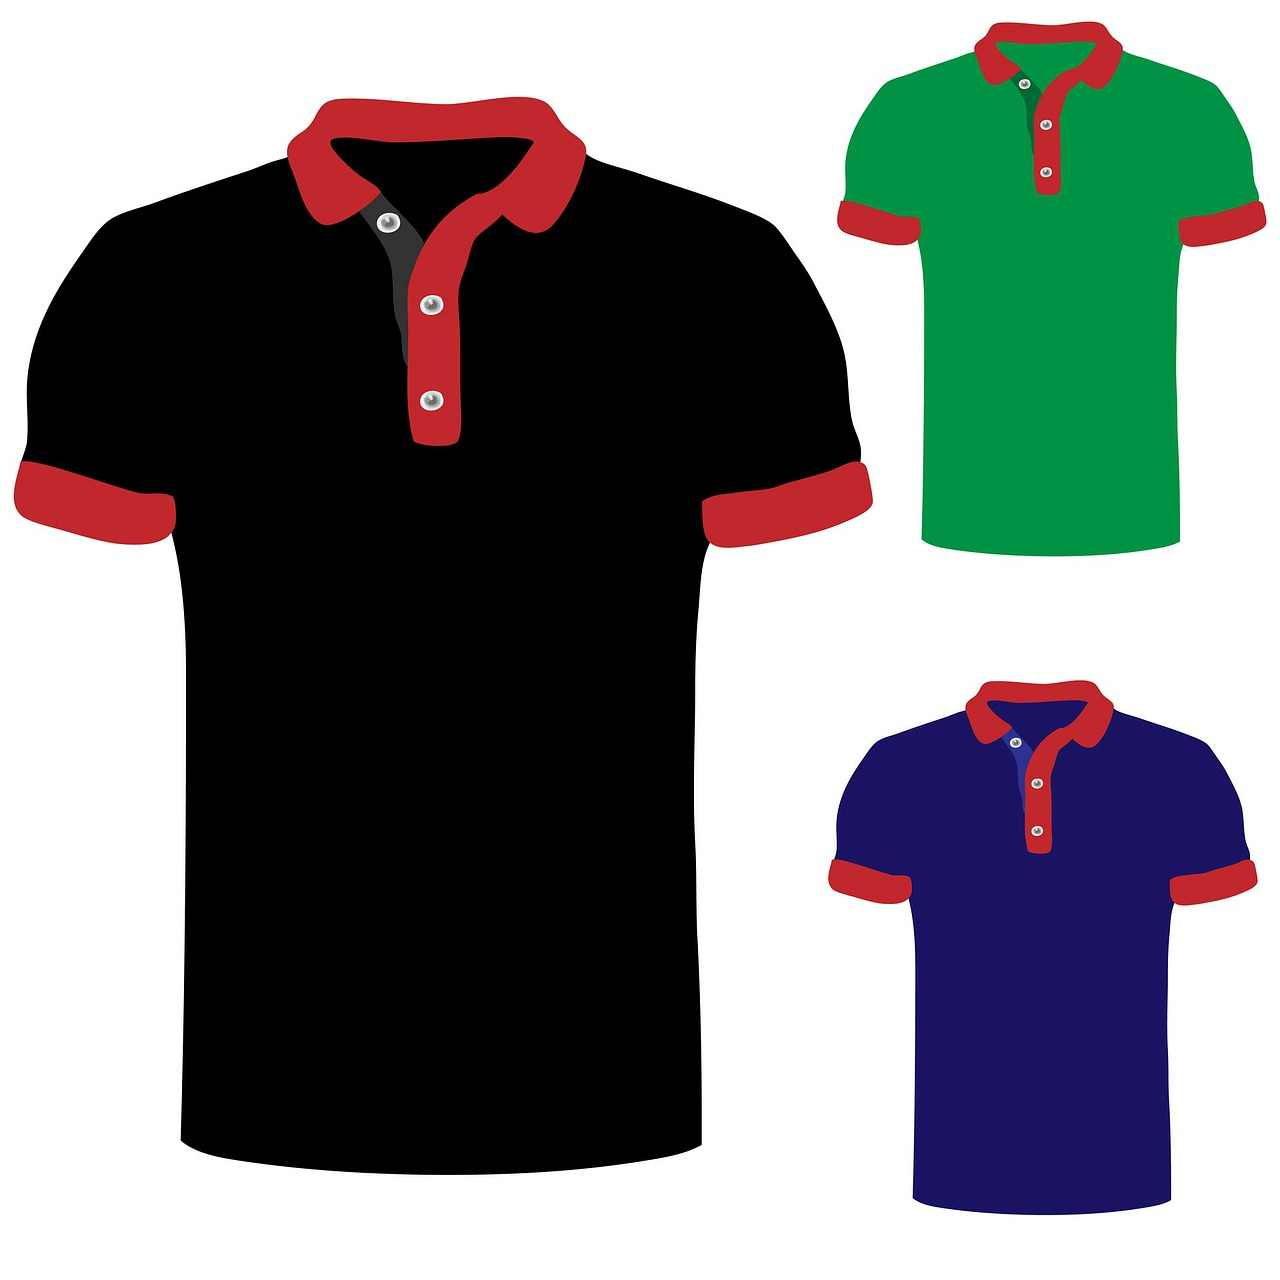 Polo shirt wearing guide for men the adair group polo shirt wearing guide for men geenschuldenfo Image collections